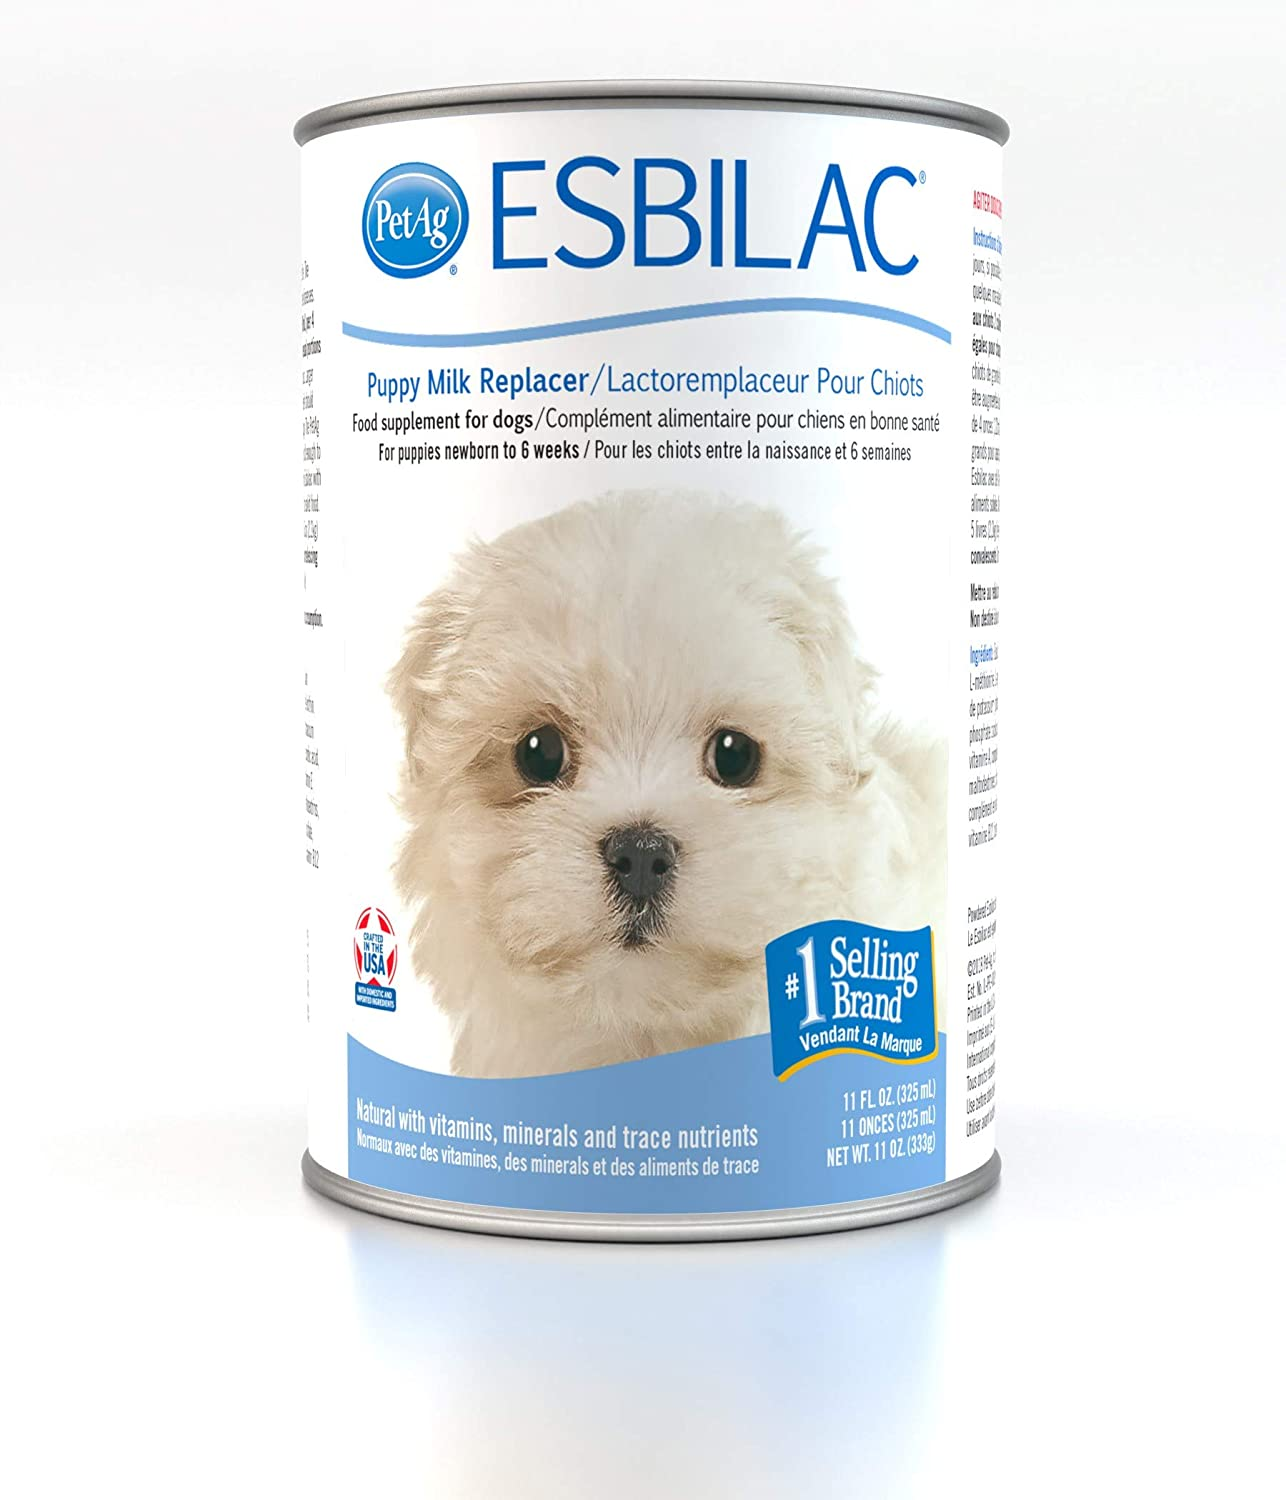 PetAg Esbilac Puppy Milk Replacer Review